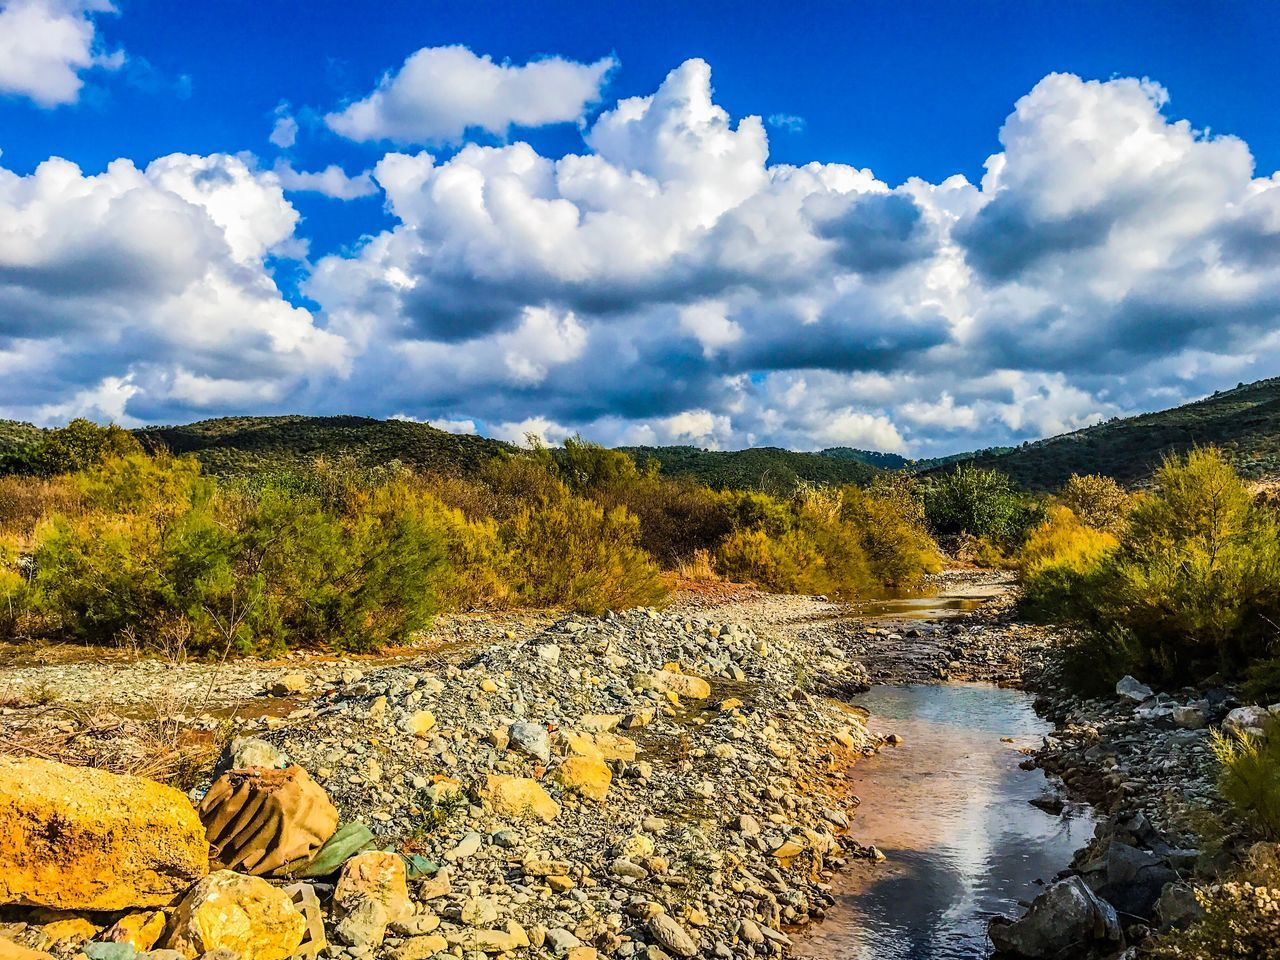 Nature Sky Scenics Beauty In Nature Cloud - Sky No People Water Tranquility Mountain Outdoors Non-urban Scene Tranquil Scene Day Landscape Idyllic Tree Autumn Cloud Cloudy River Nature Blue Tree Followme Follow4follow